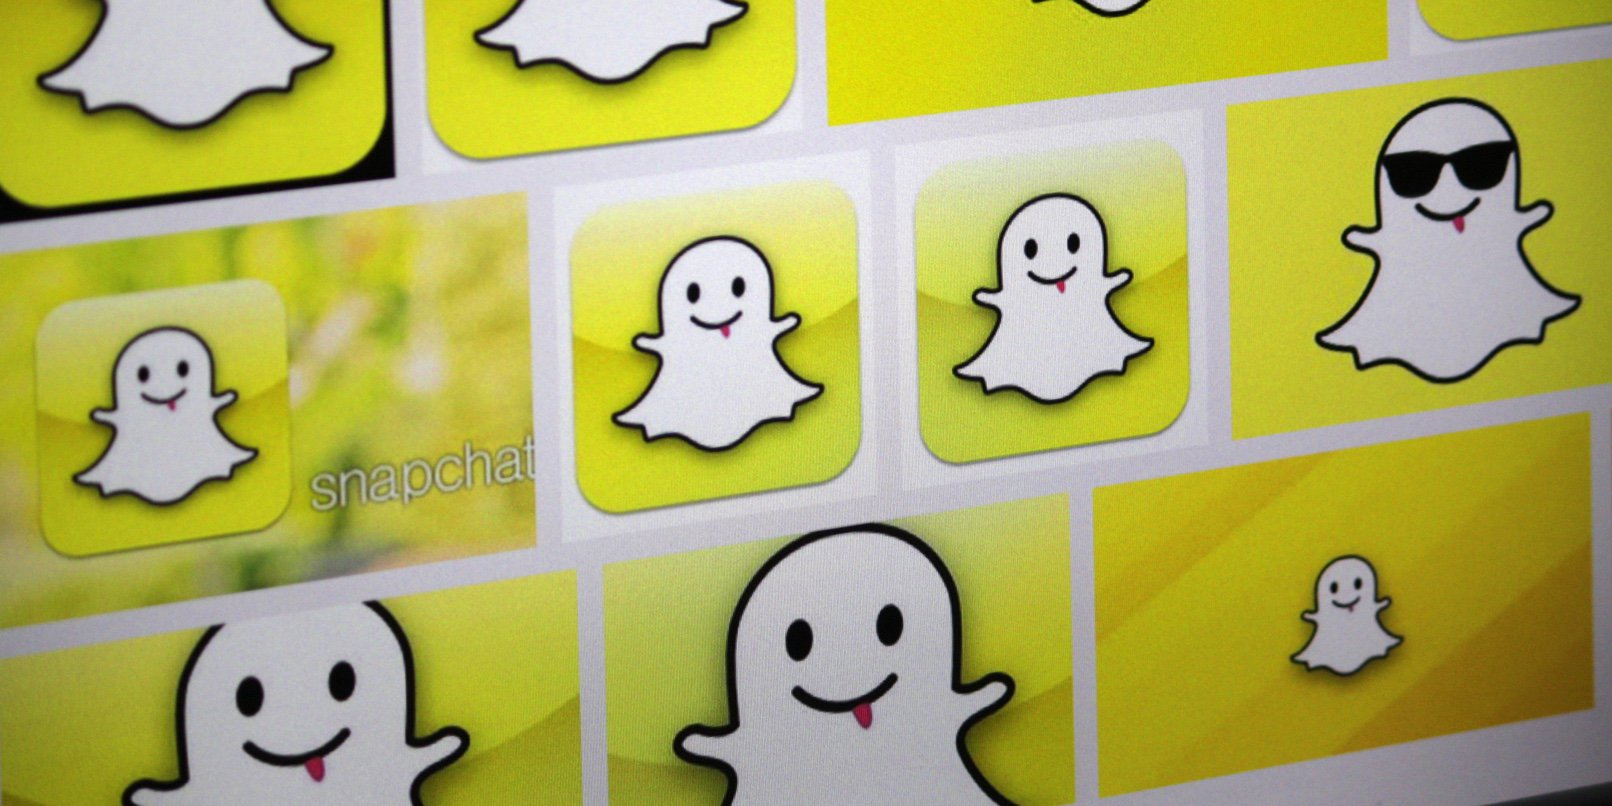 RT @TheNextWeb: You might soon be able to subscribe to your favorite channels on Snapchat https://t.co/eoGDvw0Hmk https://t.co/LvfD5zUpv0